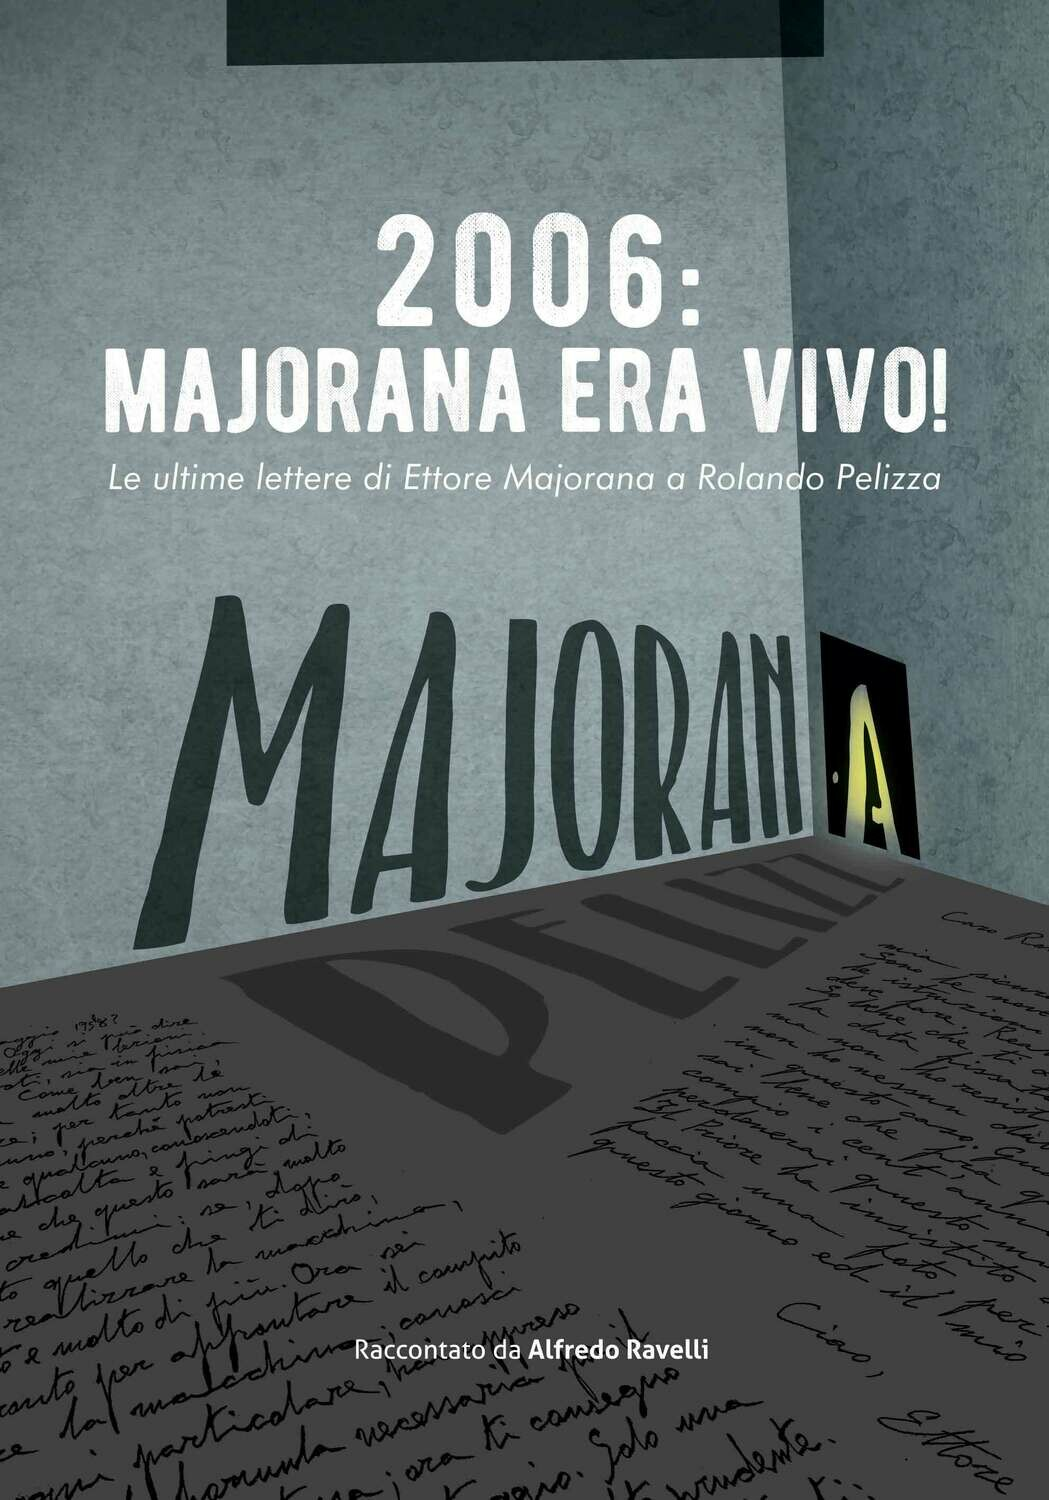 2006: Majorana era vivo